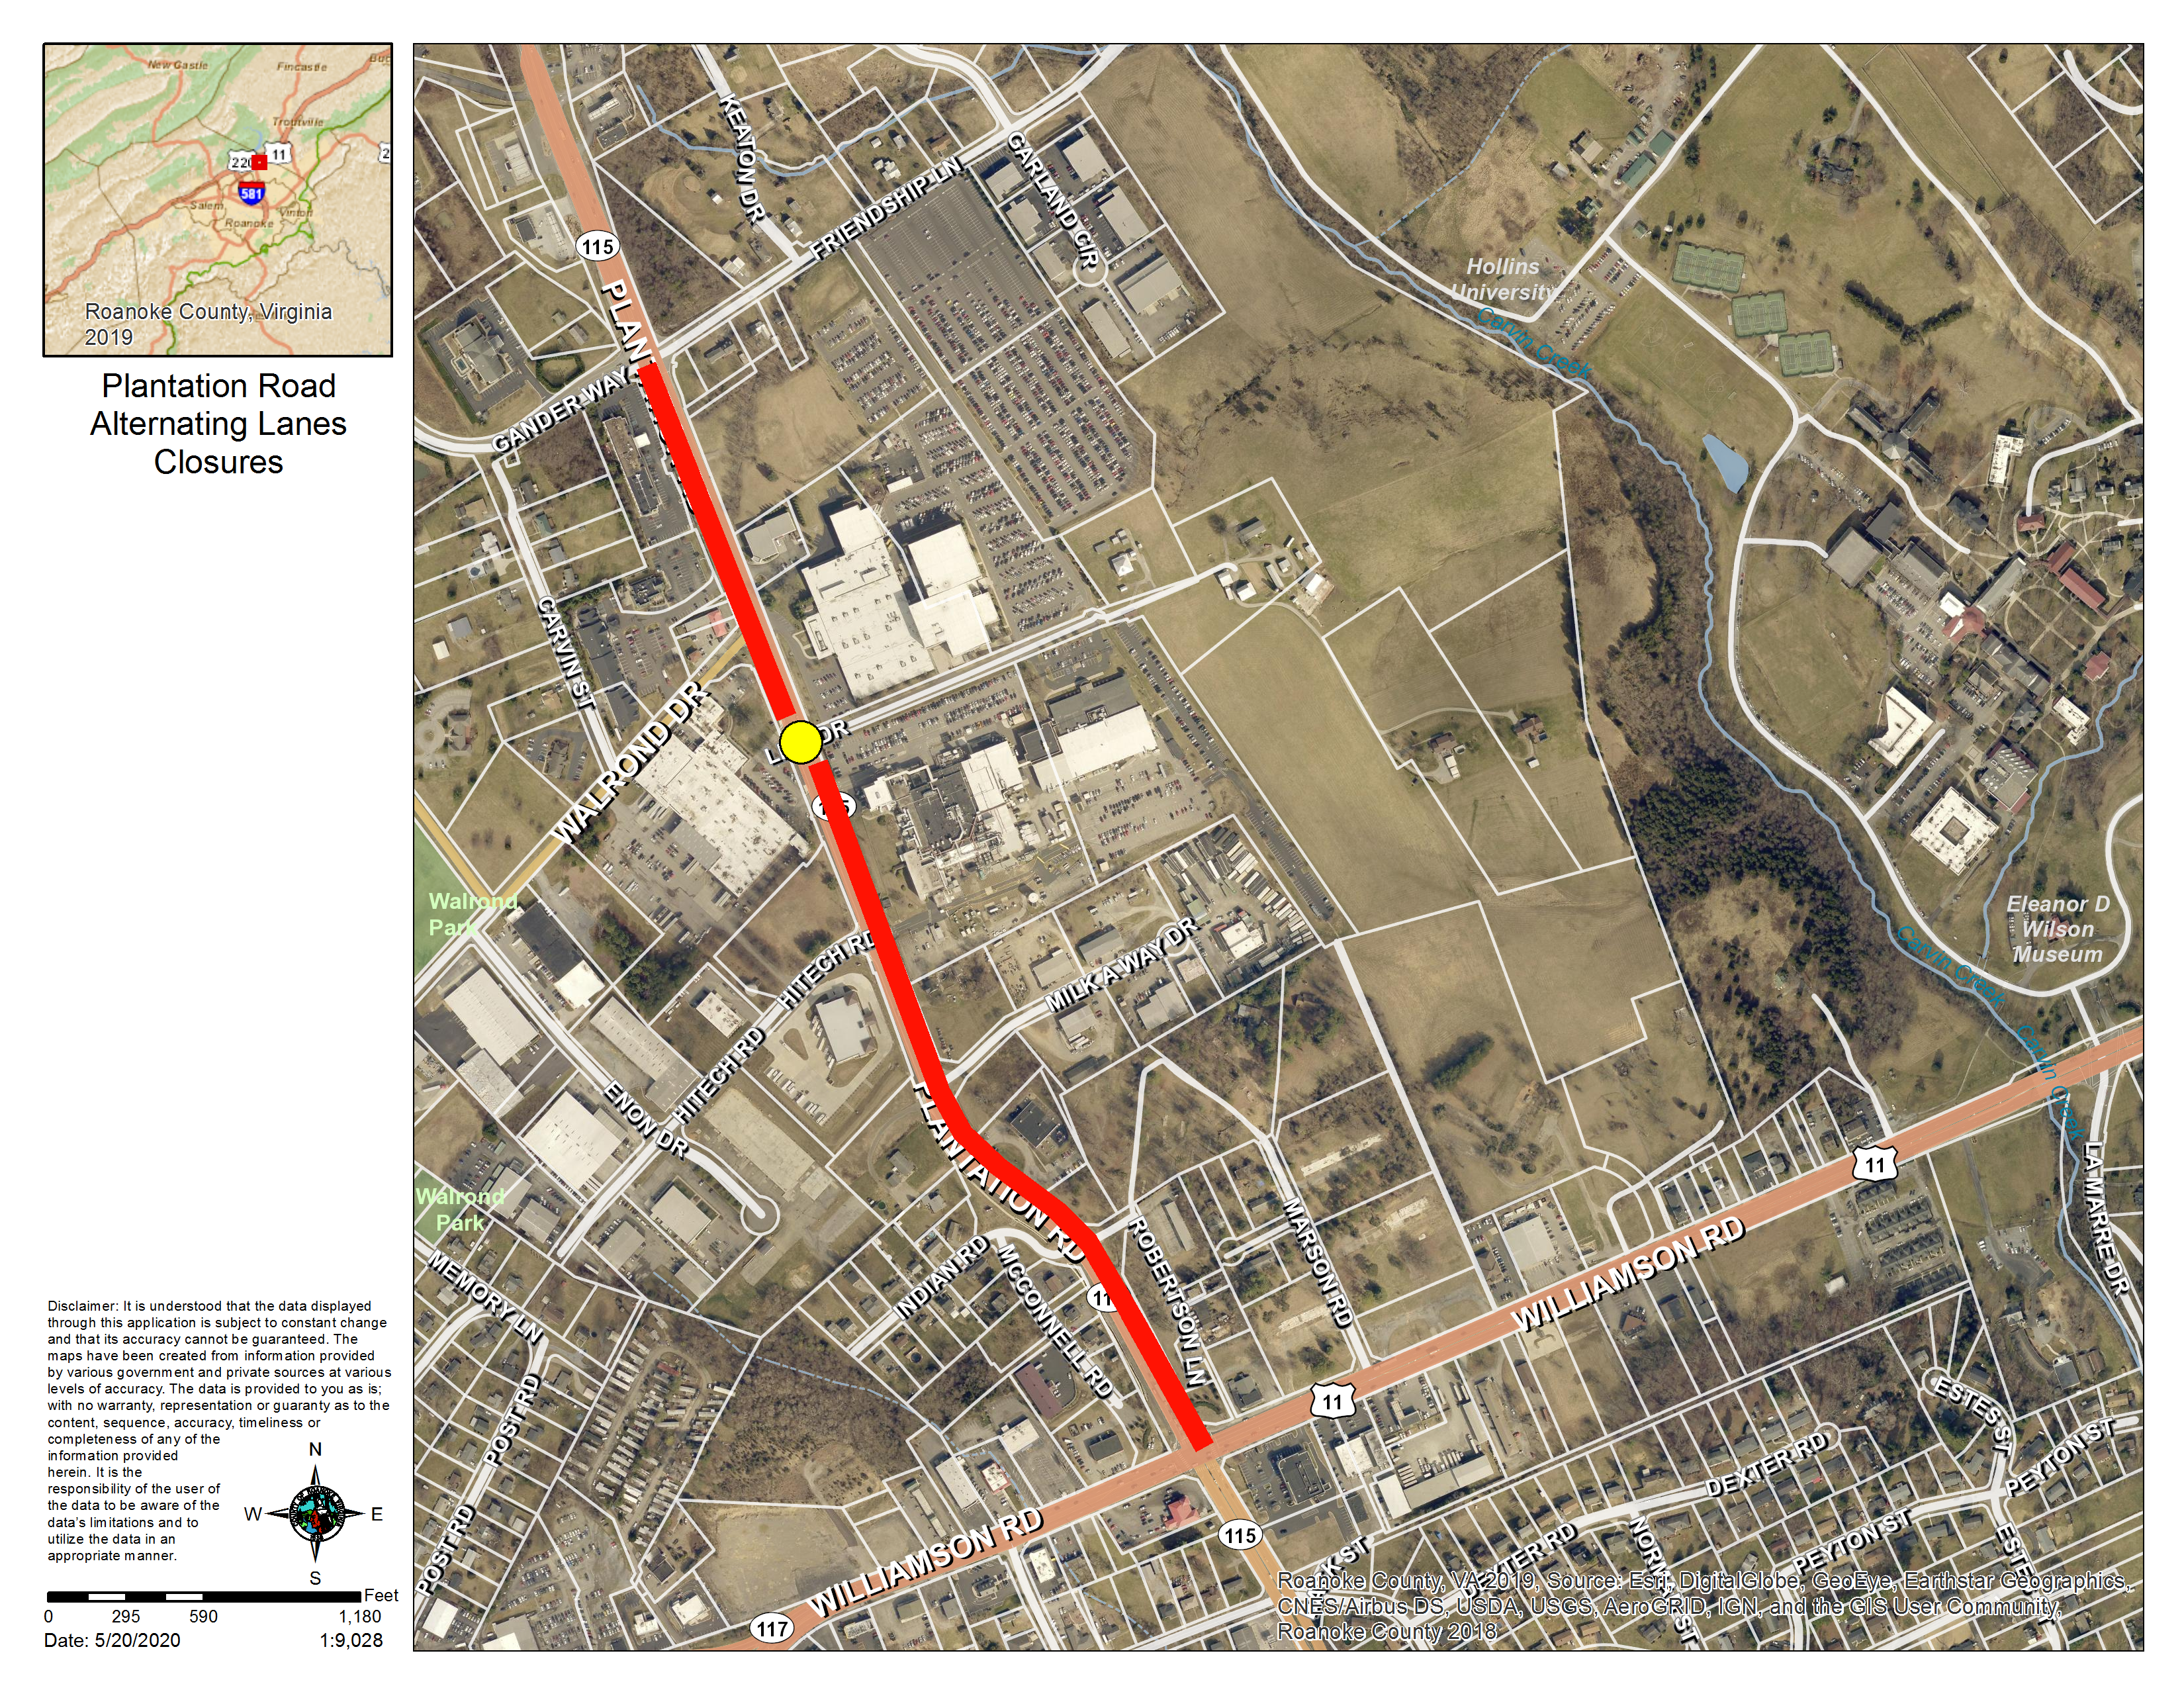 Plantation road alternating lane closure map